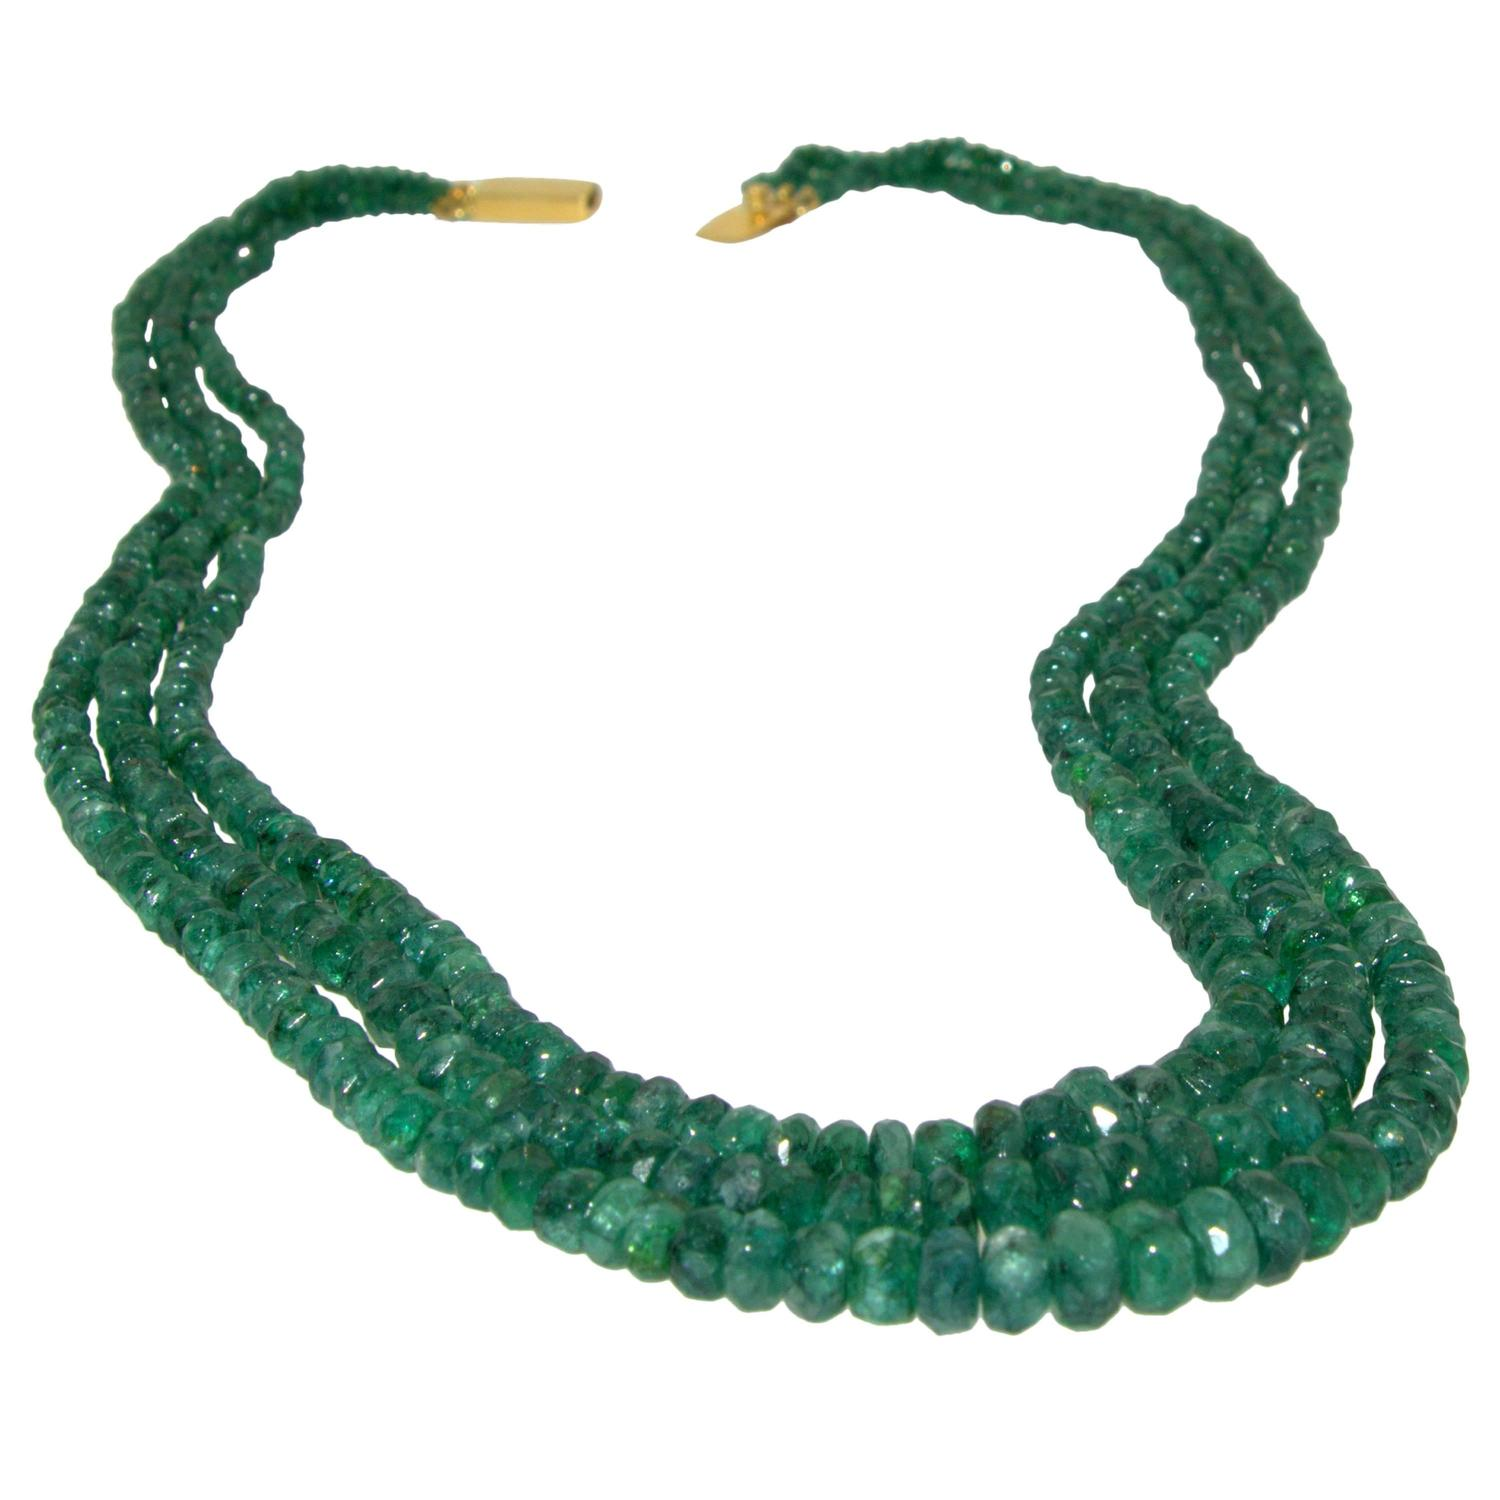 emerald bead necklace for sale at 1stdibs